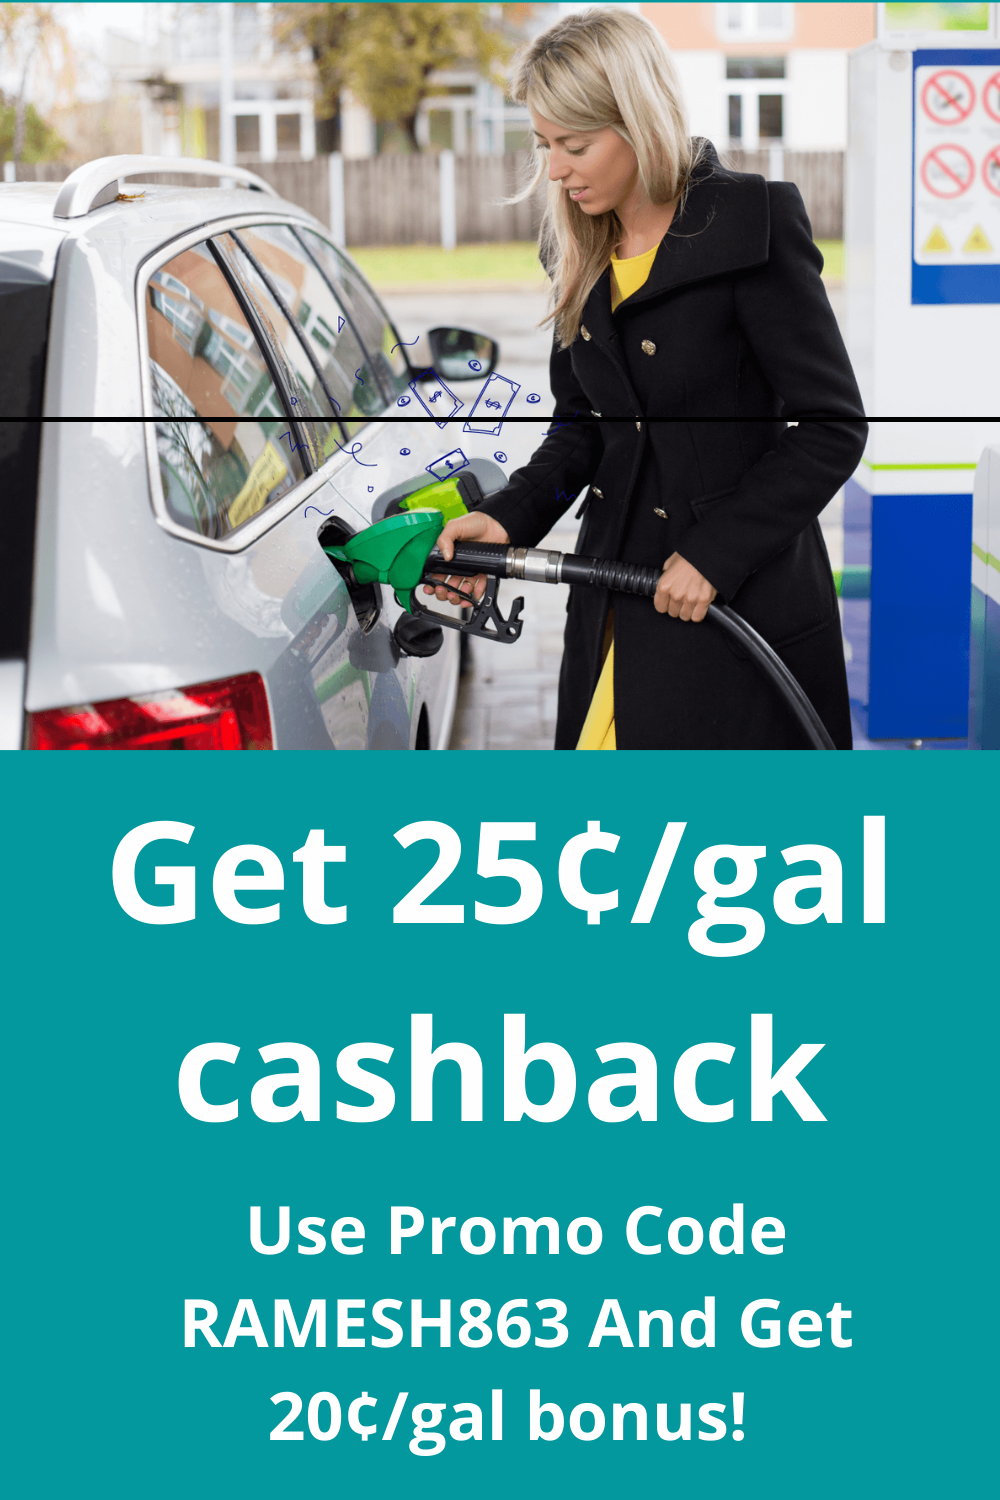 GetUpside photo with promotional code